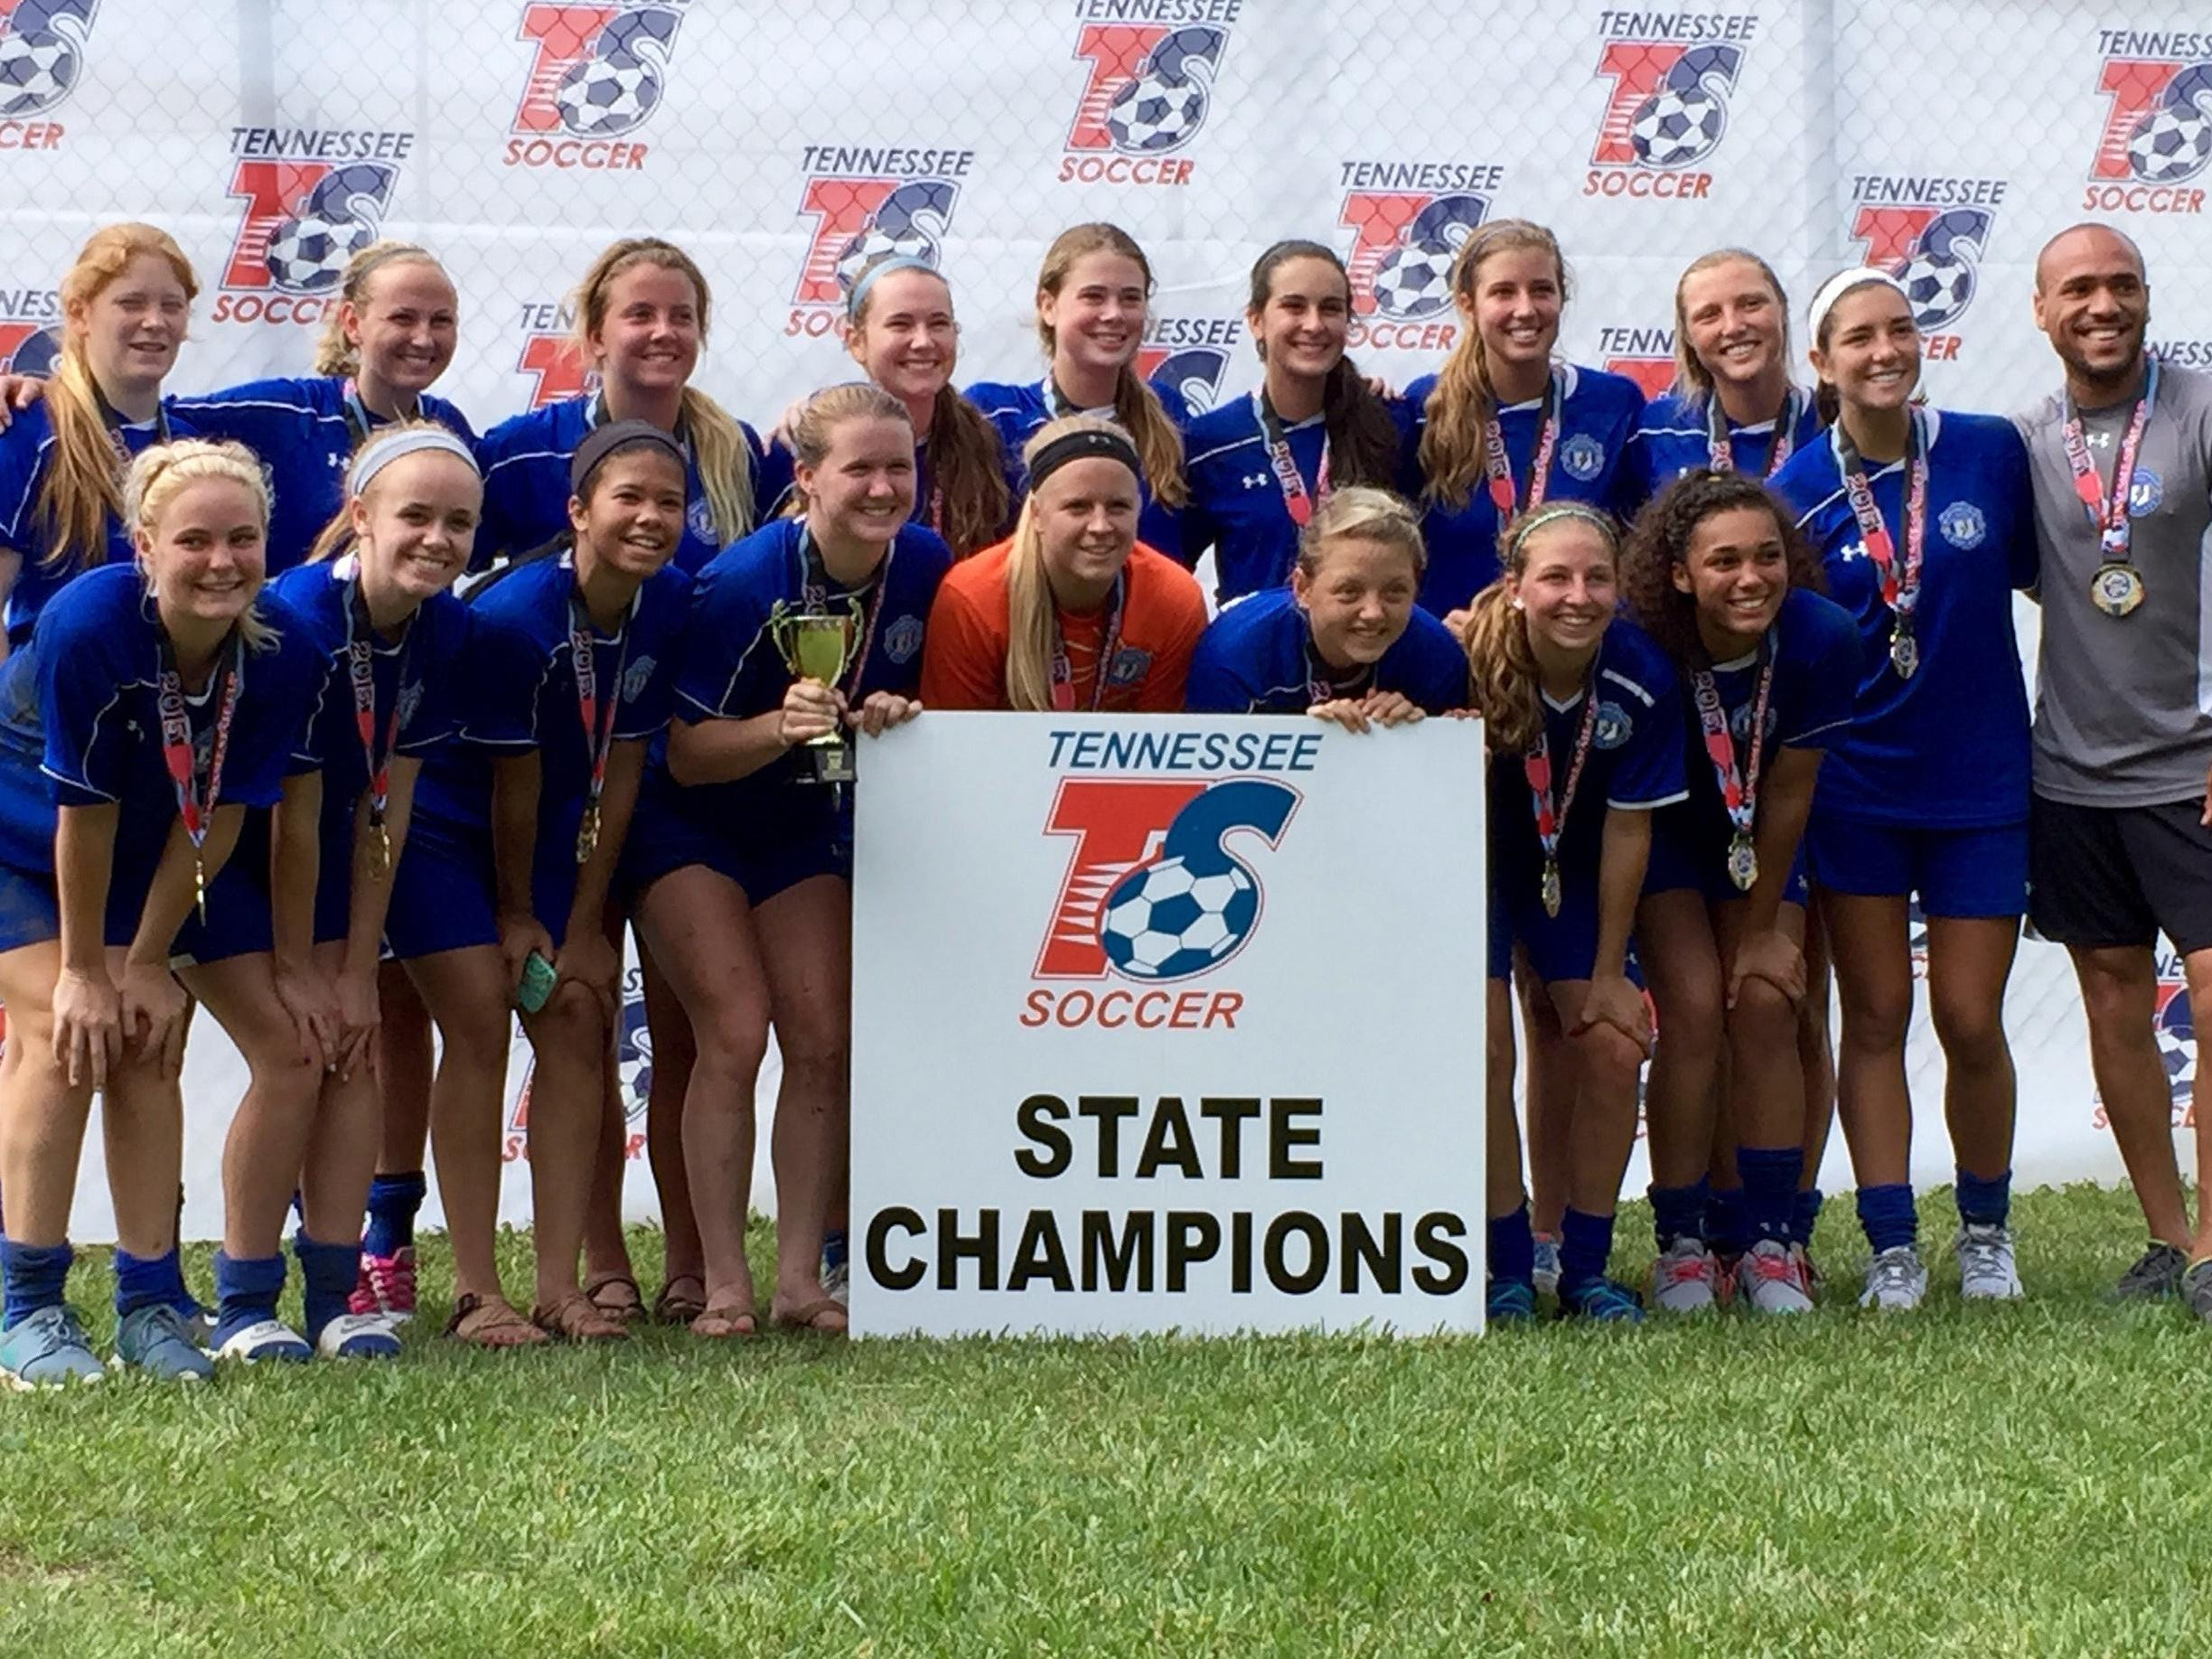 The Murfreesboro Lady Strikers 97 won the Under-18 Division 2 Tennessee state championship May 31 at Richard Siegel Soccer Complex. Team members include, front row from left, are Izzy Huddleston (Coffee County), Becca Kelley (Lebanon), Anastasia Wellington (Tullahoma), Sierra Franz (Smyrna), Katie Collins (Oakland), Kenzie Wrather (Smyrna), Colleen Kennedy (Blackman), Zoe Phillips (Blackman) and back from left, Kaitlyn McBrien (Lebanon), Chelsey Russom (Siegel/Trevecca), Callie Ruf (Siegel), Megan Woods (Blackman), Emma Adcock (Siegel), Becca Mullendore (Siegel), Madeline Rose (Oakland), Hailey Puckett (Shelbyville), Cori Steinagle (Siegel) and coach Jordan Salisbury.